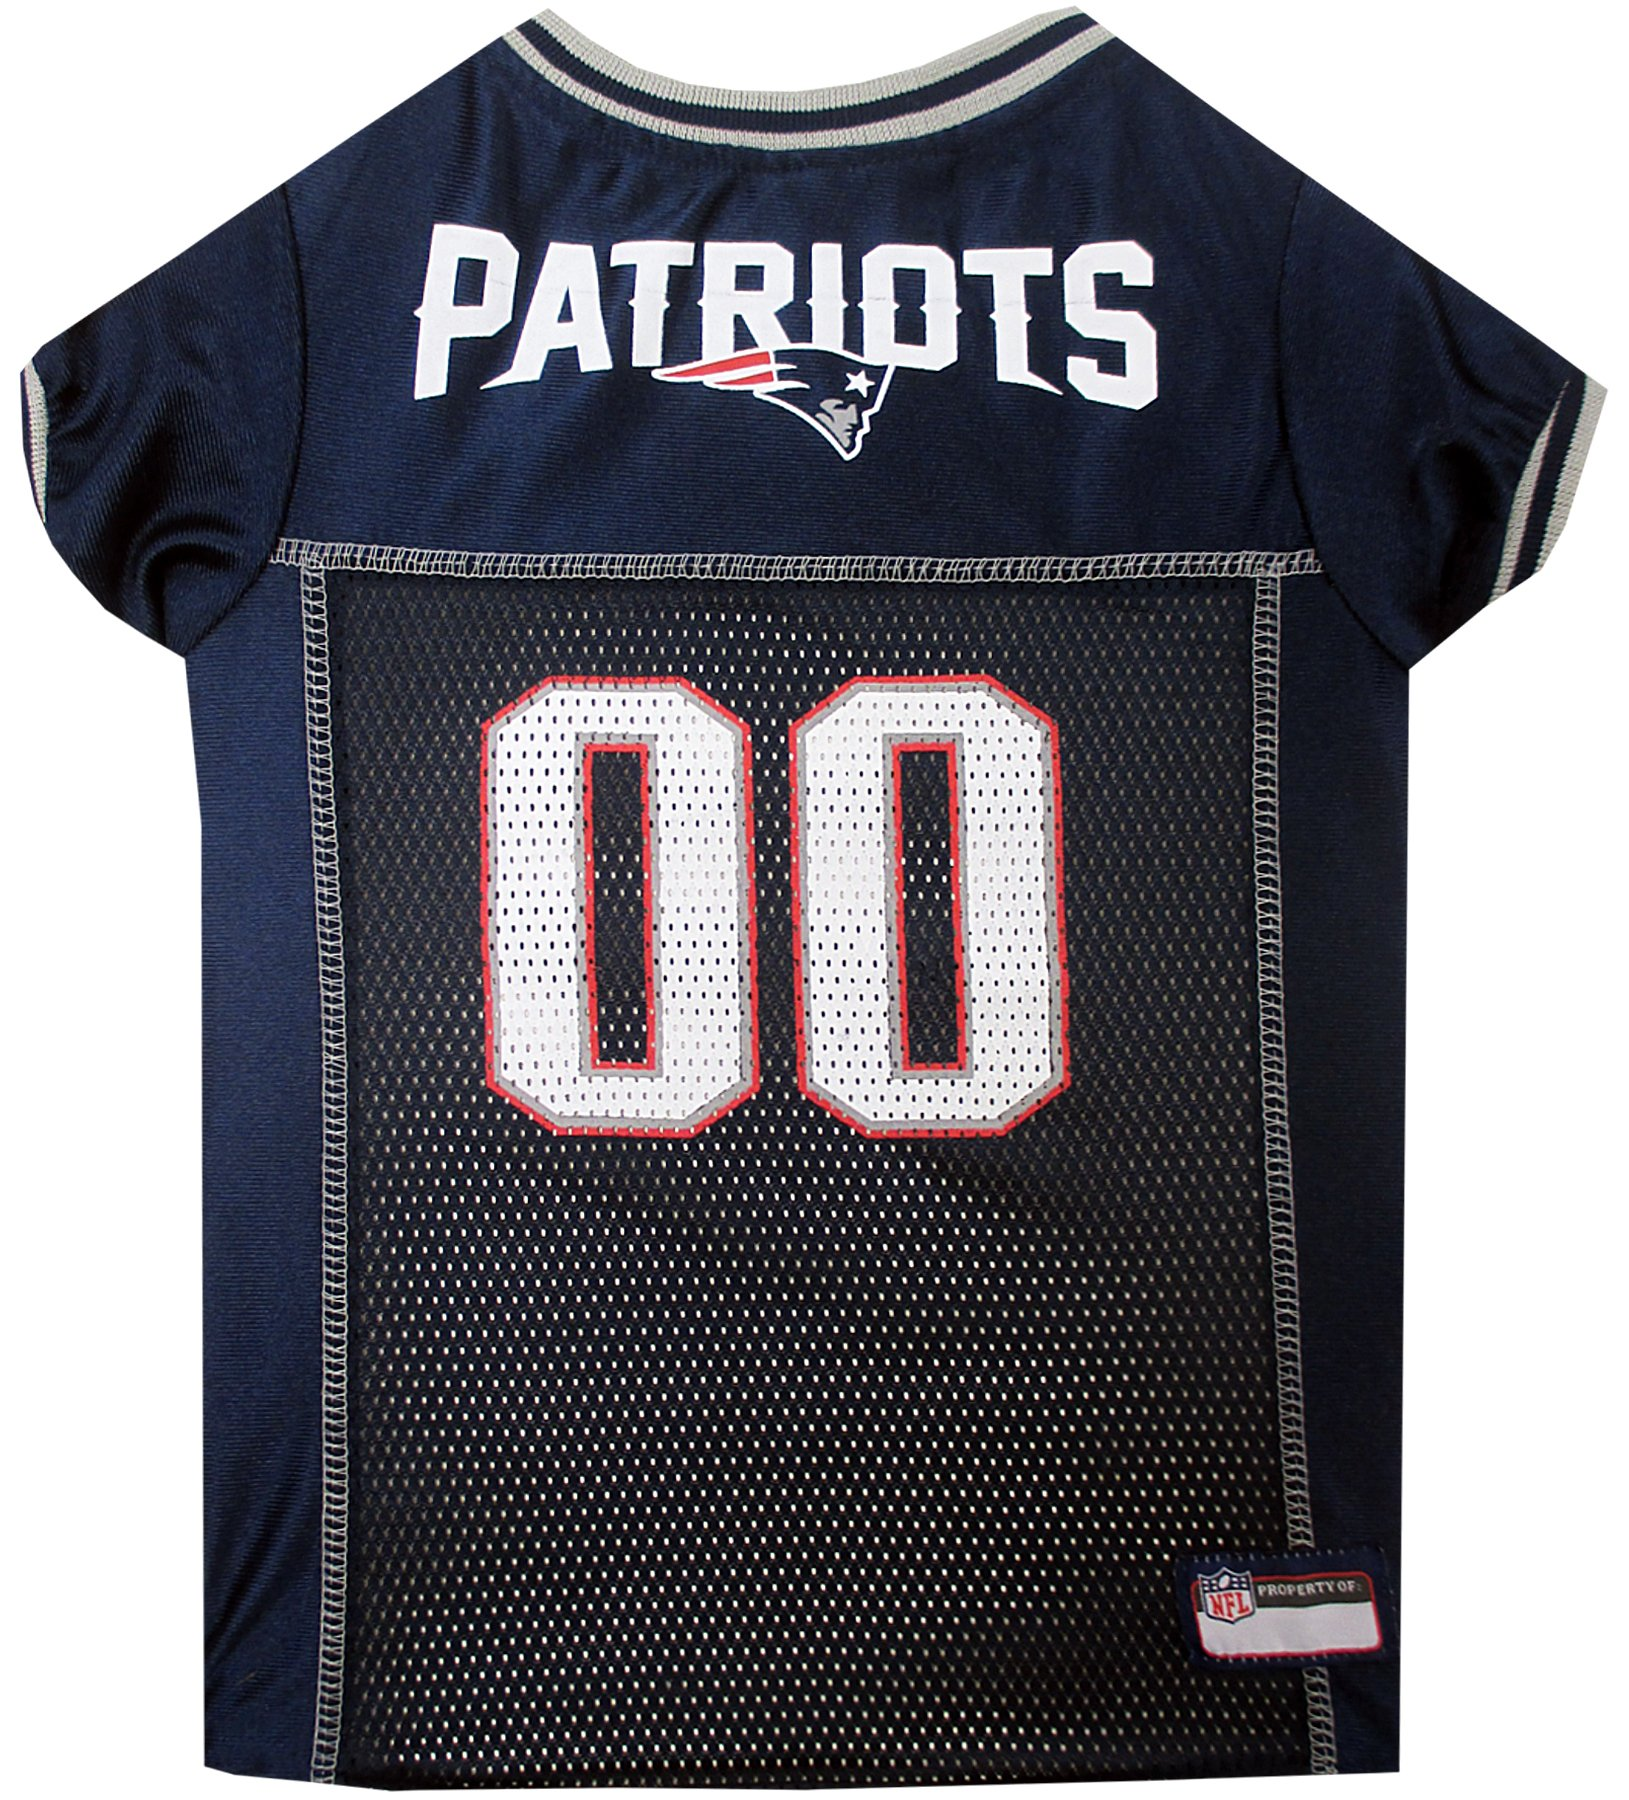 NFL NEW ENGLAND PATRIOTS DOG Jersey, XX-Large by NFL